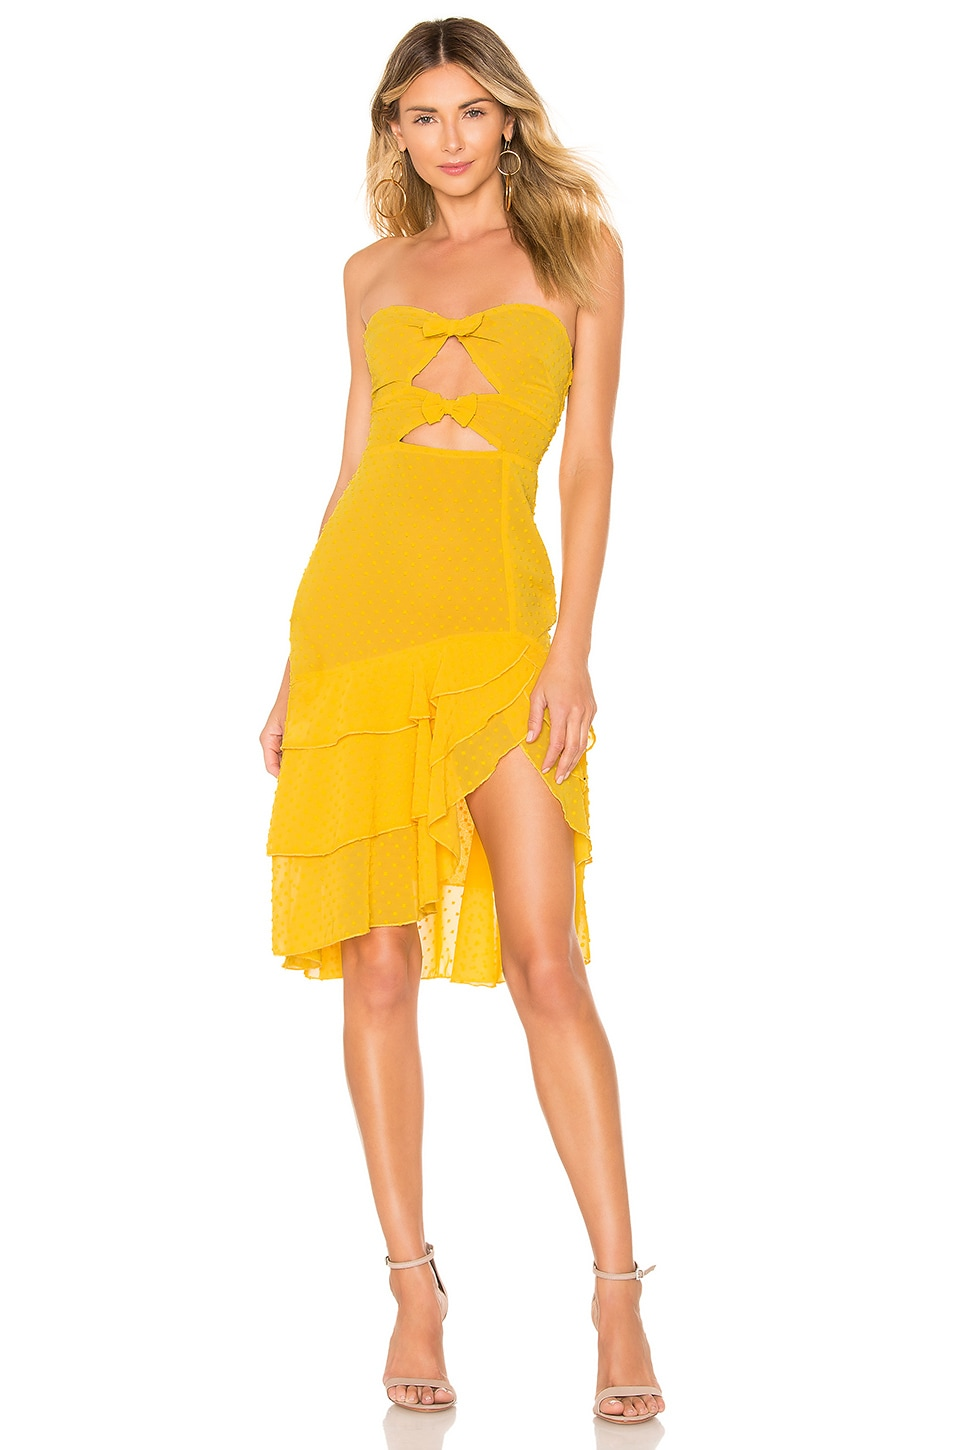 MAJORELLE Emelia Midi Dress in Sunshine Yellow